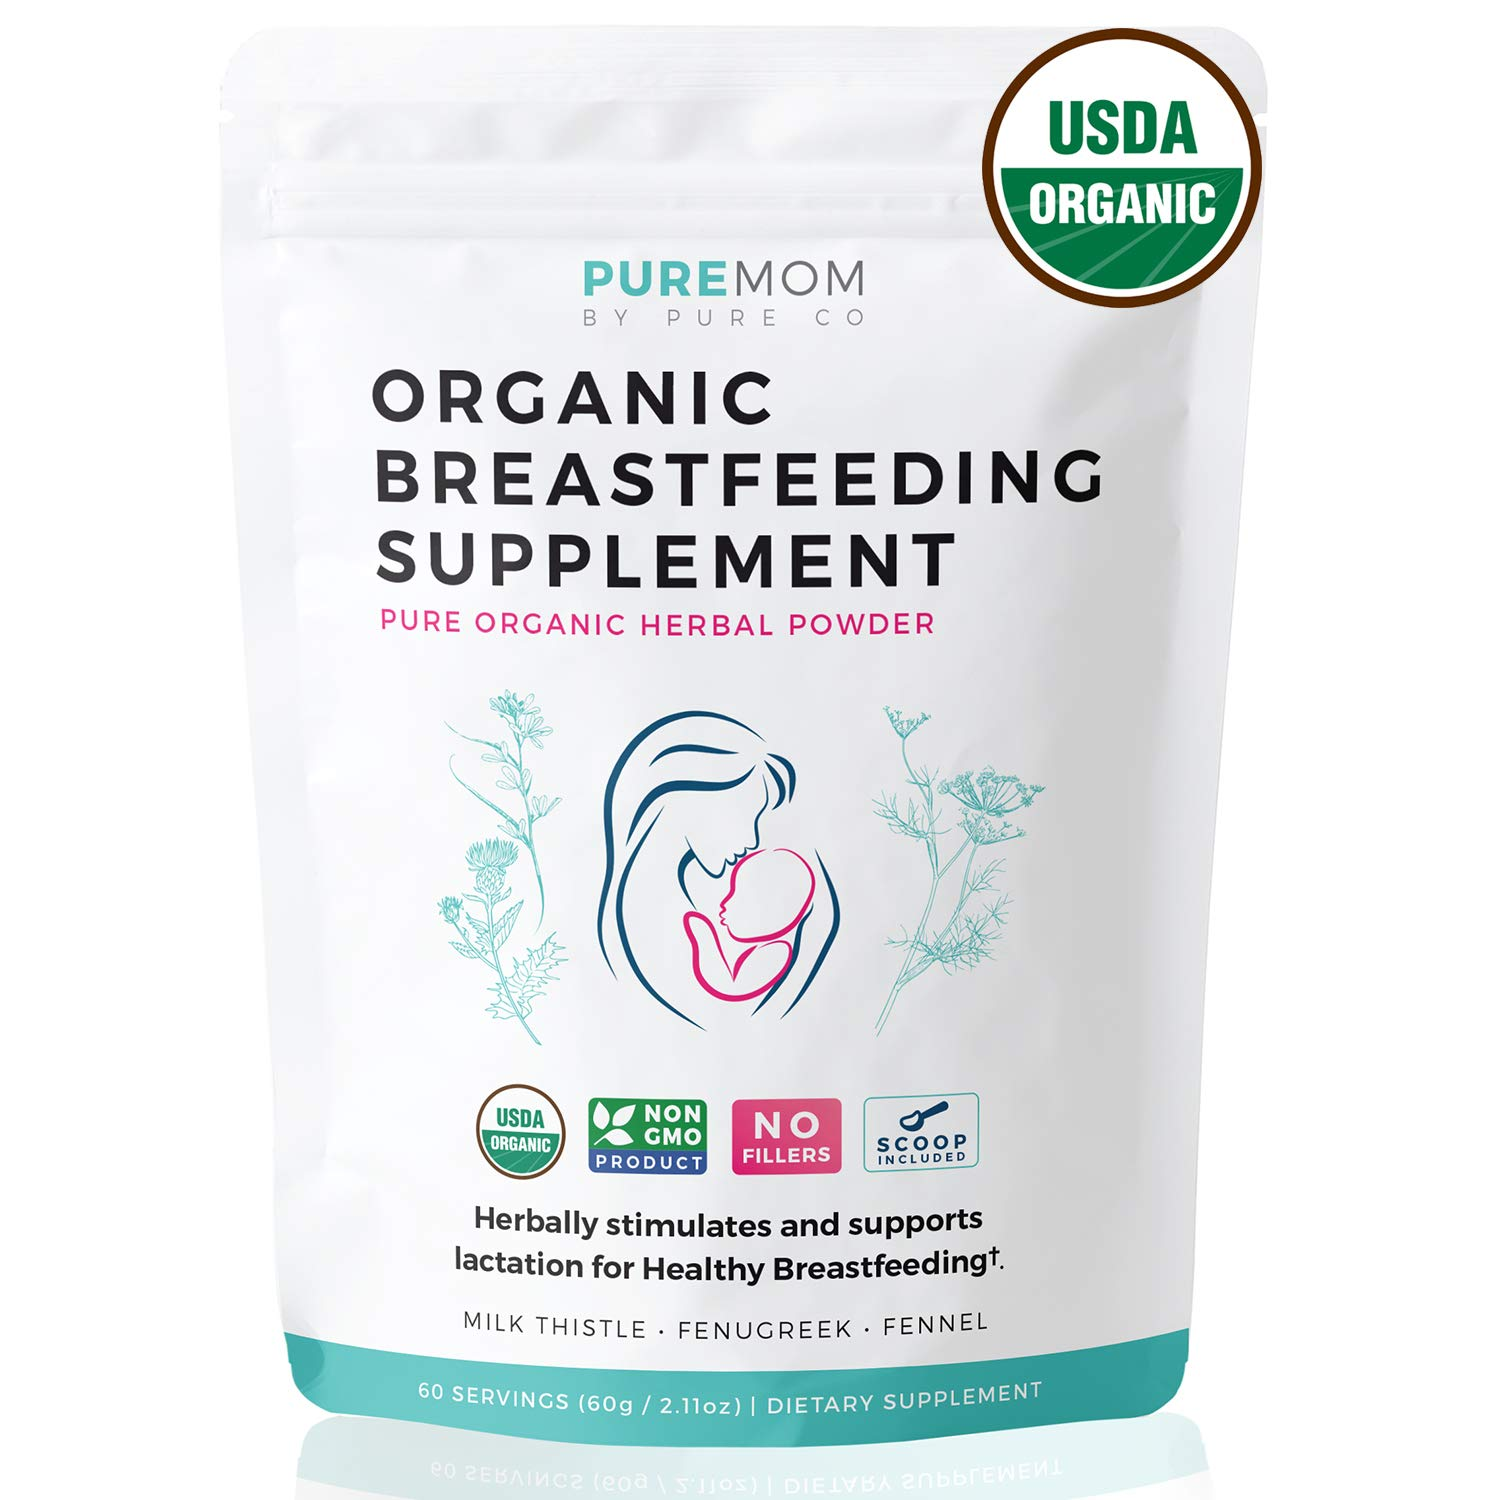 USDA Organic Breastfeeding Supplement (Powder) Increase Milk Supply & Herbal Lactation Support - No Fillers - Aid for Mothers - Non-GMO - Fenugreek Seed, Milk Thistle & Fennel Seed | 60 Grams